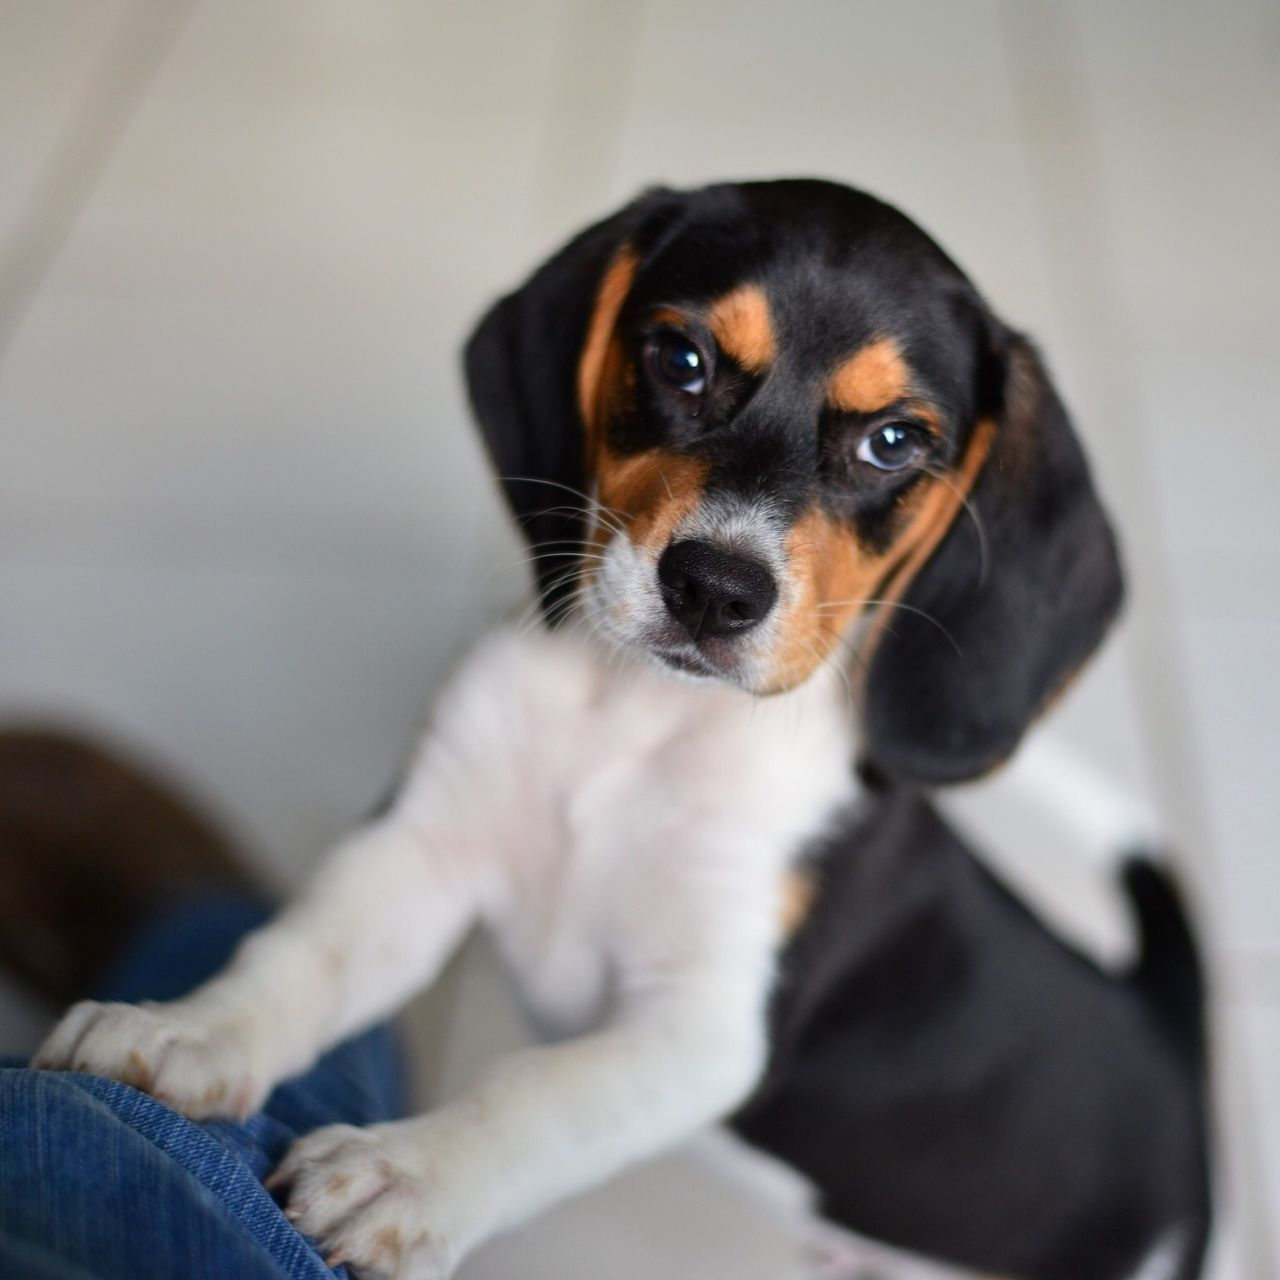 Beagle pup Dogs Portrait Taking Photos Eye4photography